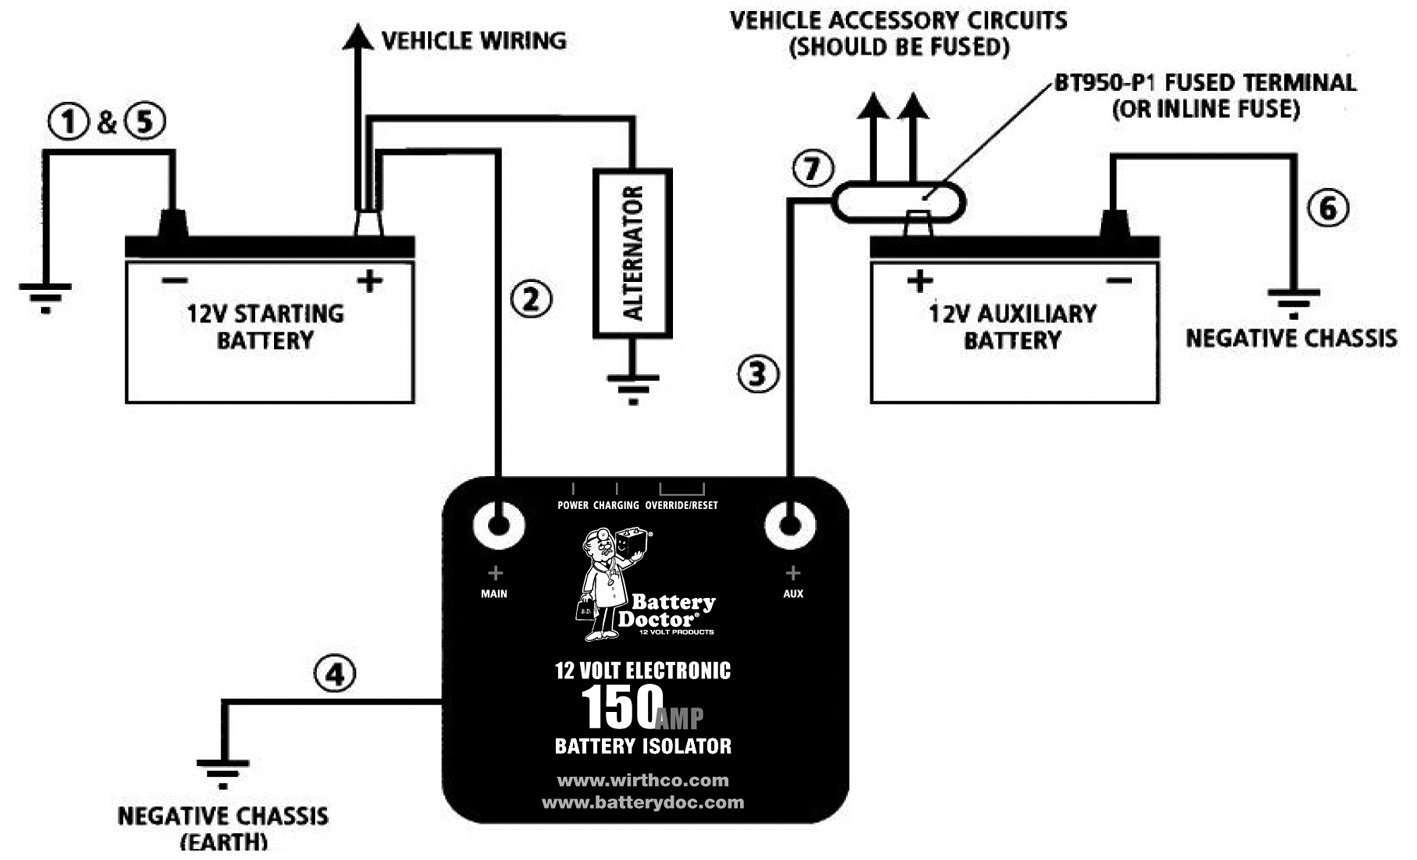 Sprinter Wiring Diagrams For Alternators Diagram Installing A Battery Charged By The Alternator In Camper